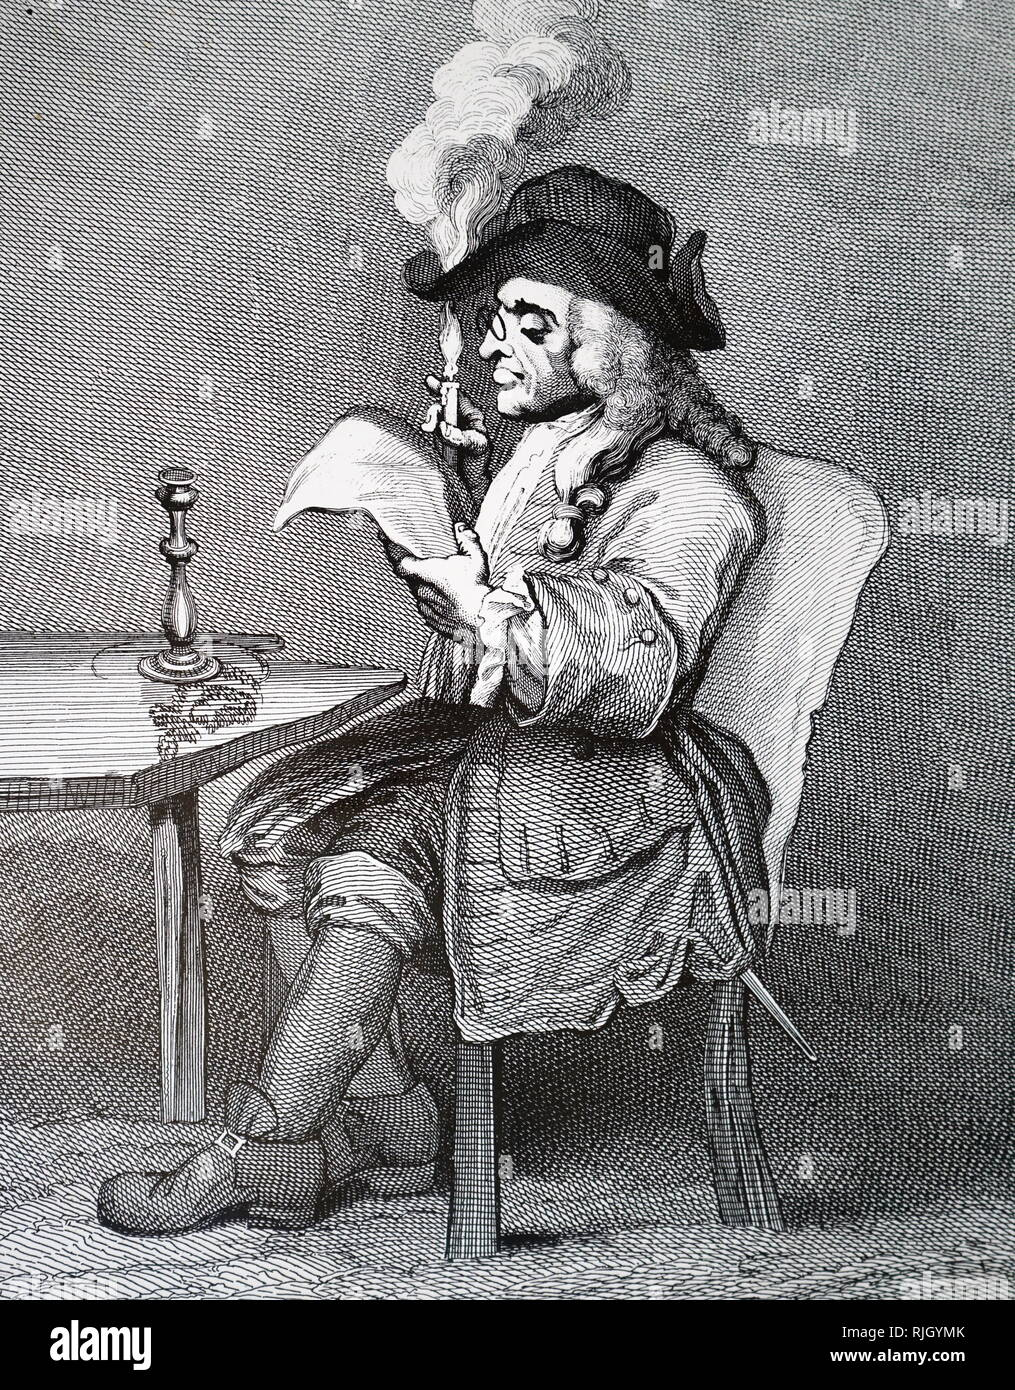 An engraving titled 'The Politician' by William Hogarth (1697-1764) English painter, printmaker, pictorial satirist, social critic, and editorial cartoonist who has been credited with pioneering western sequential art. Dated 18th century. - Stock Image